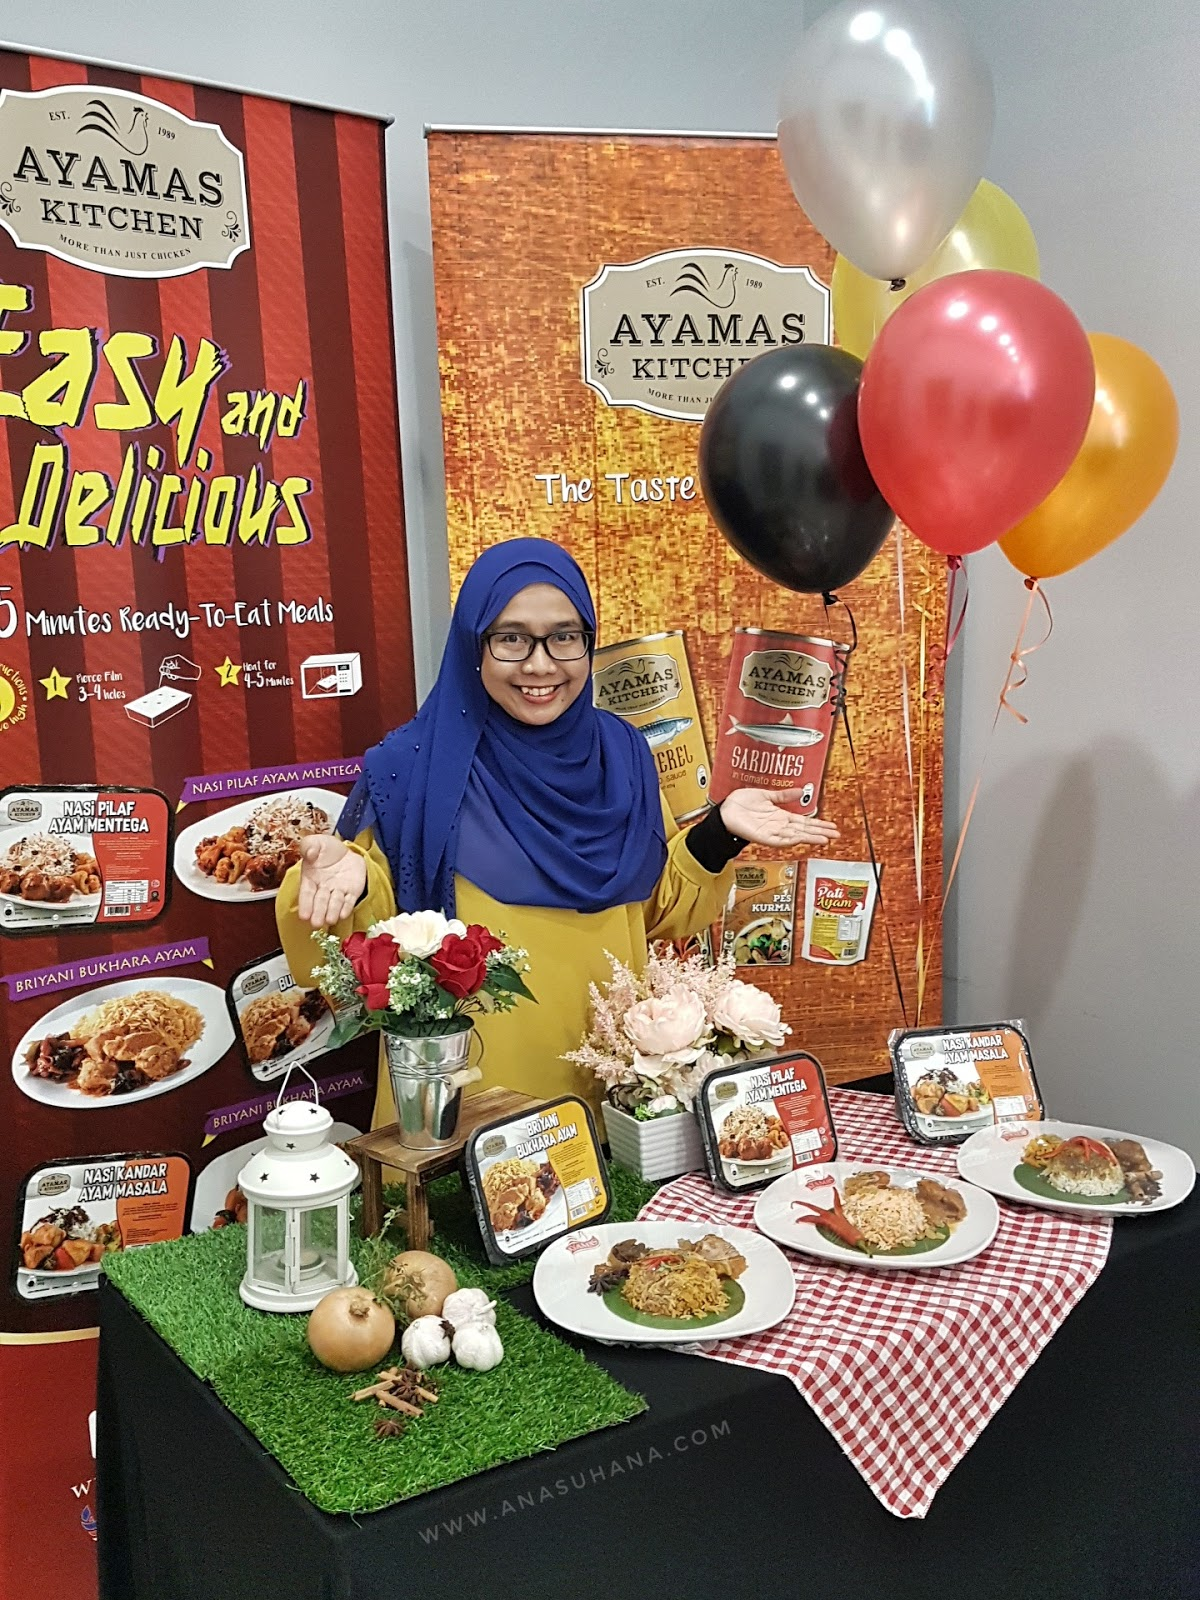 Ayamas Kitchen Ready-to-Eat